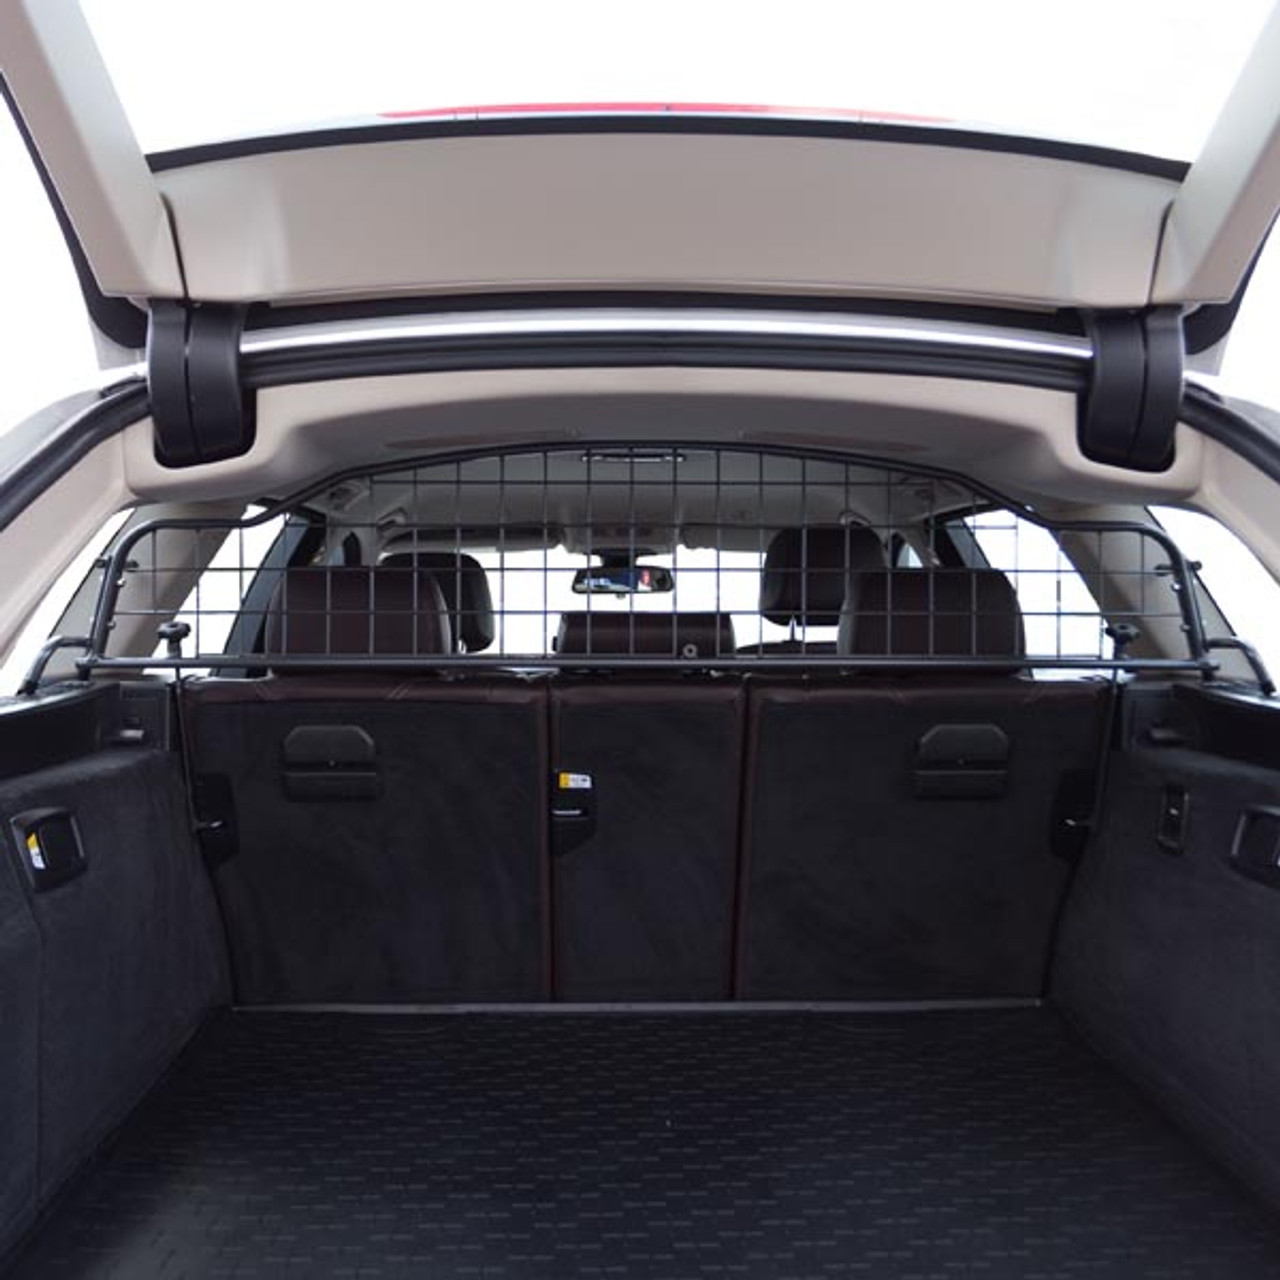 Custom Made Dog Guard For Bmw 5 Series Touring 2010 To 2016 Dog Guards R Us